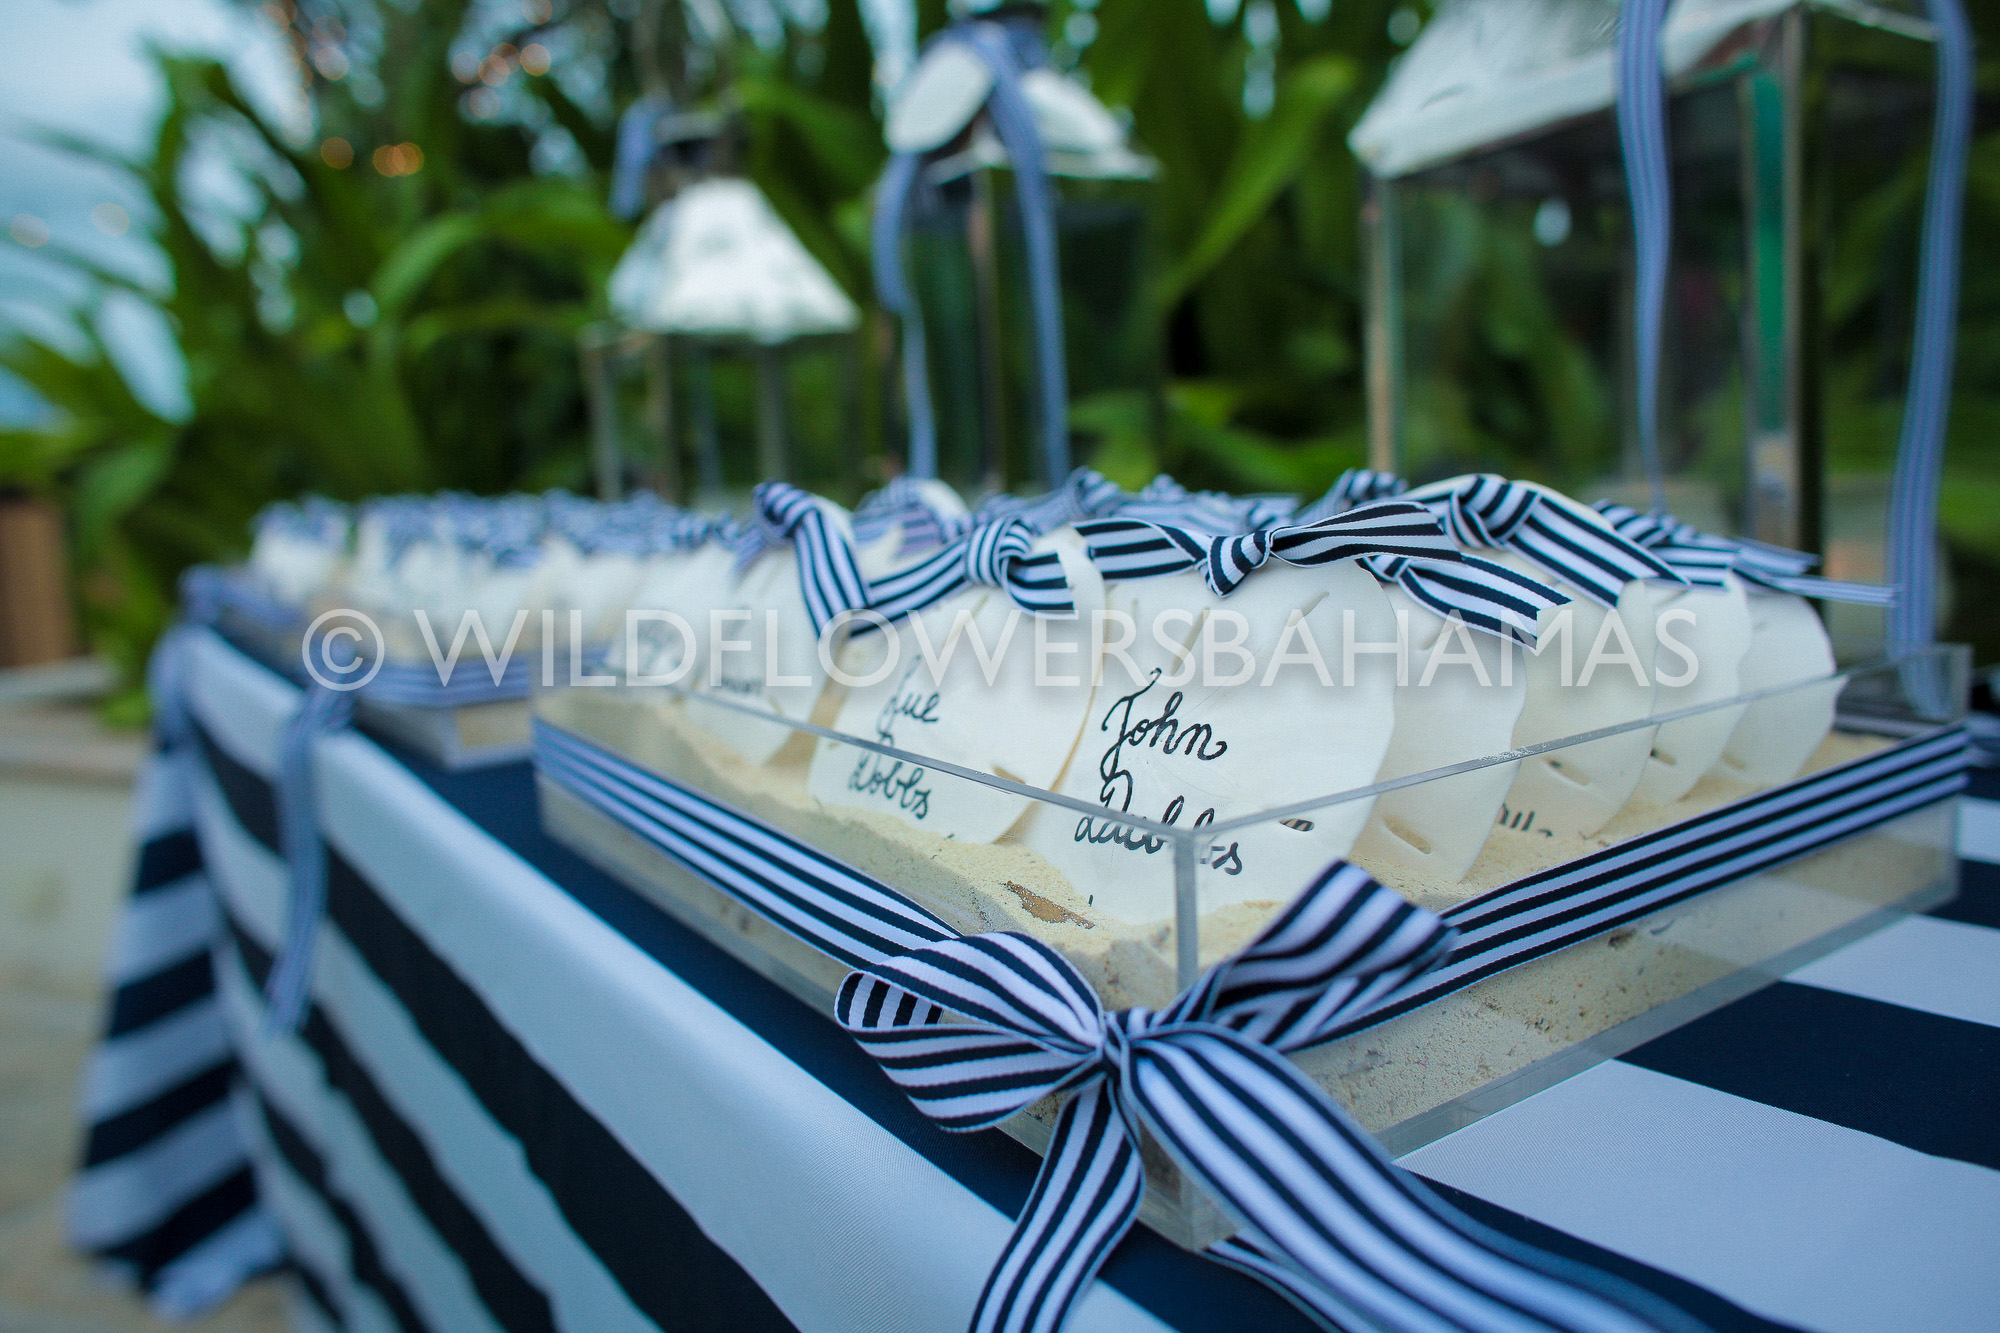 Wildflowers-Bahamas-Weddings-Events-Decor-SM.jpg